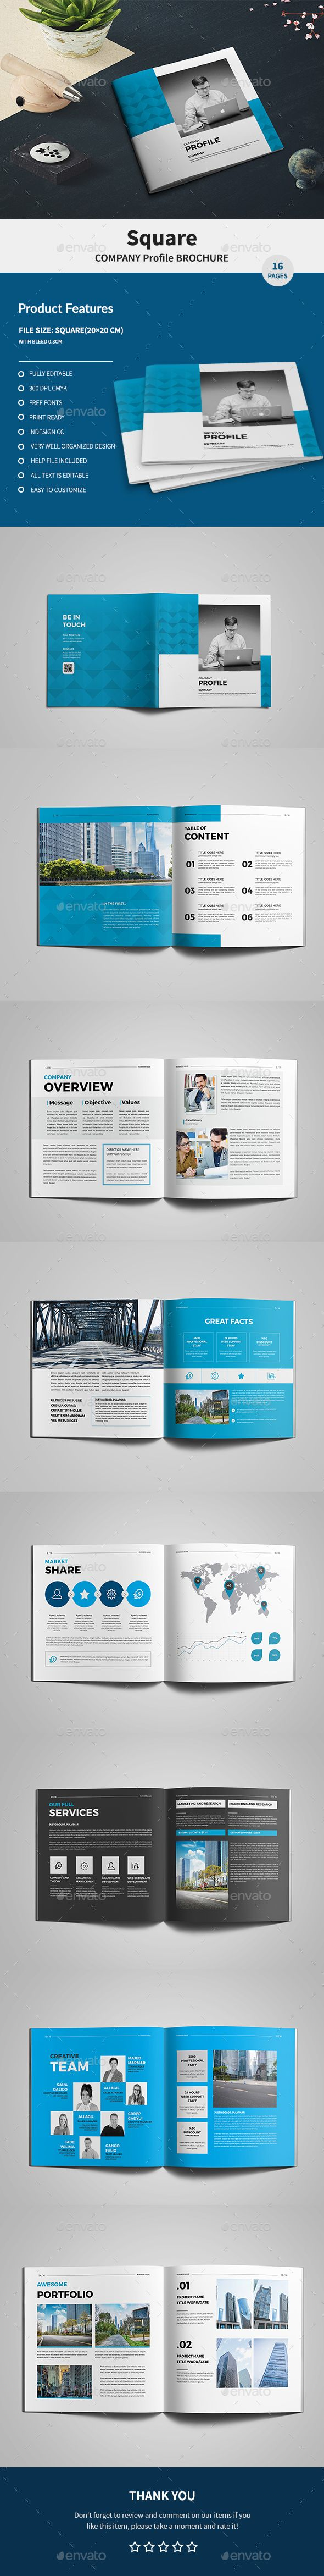 Square Company Profile Brochure - Corporate #Brochures Download here: https://graphicriver.net/item/square-company-profile-brochure/19956341?ref=alena994